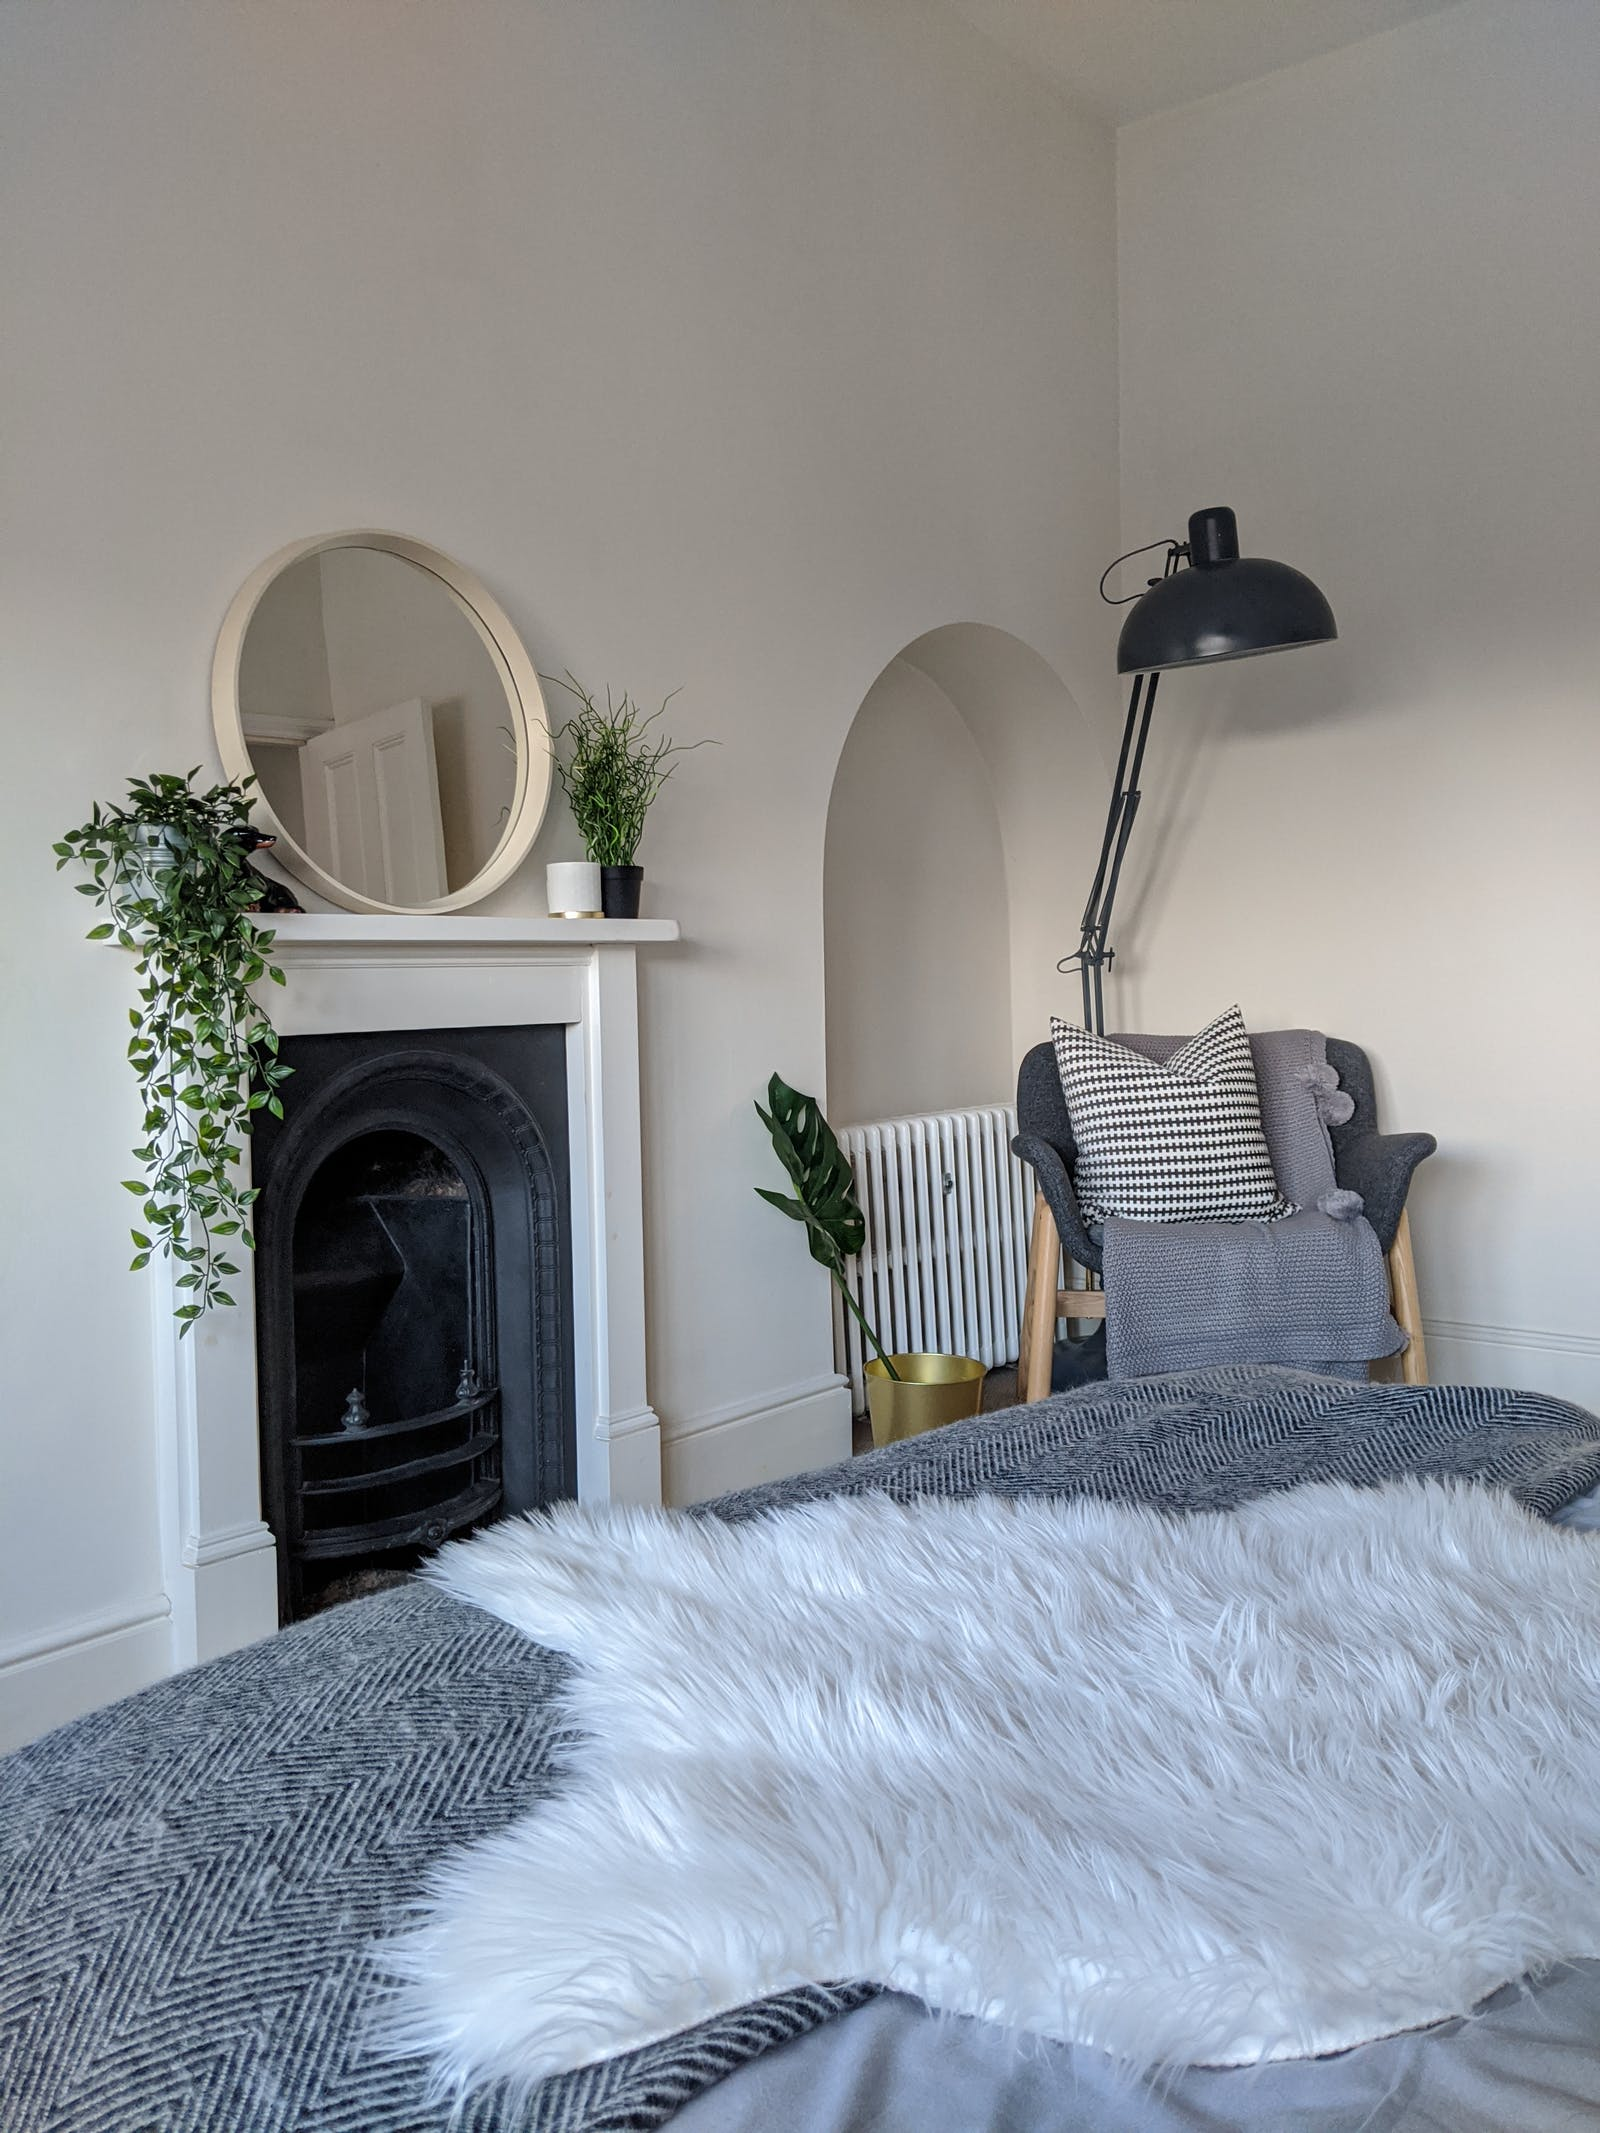 Bedroom with white walls and a fireplace